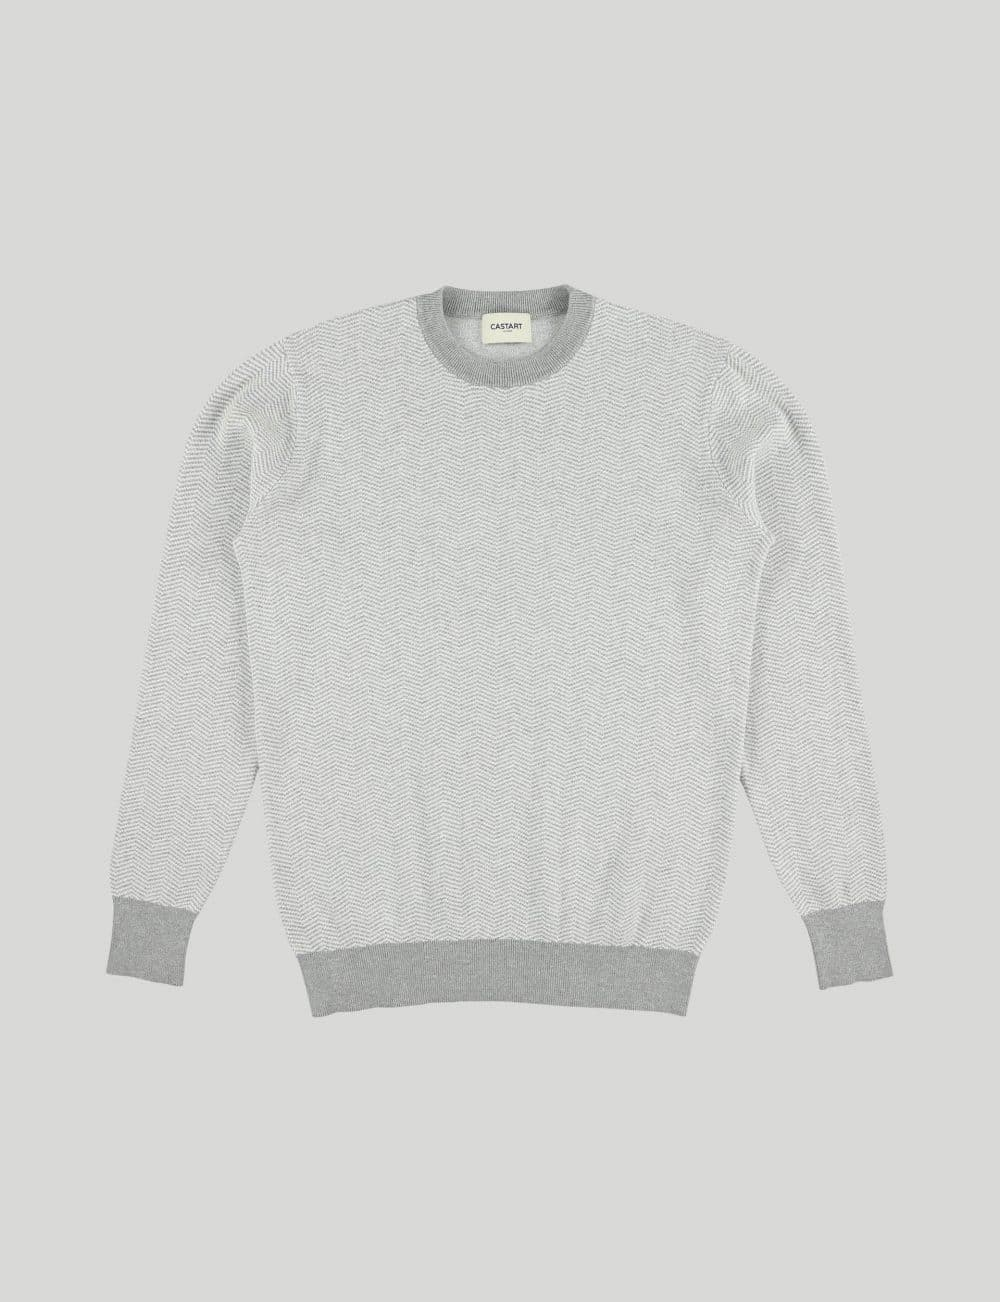 Castart - Knitwear Panda - Light Grey